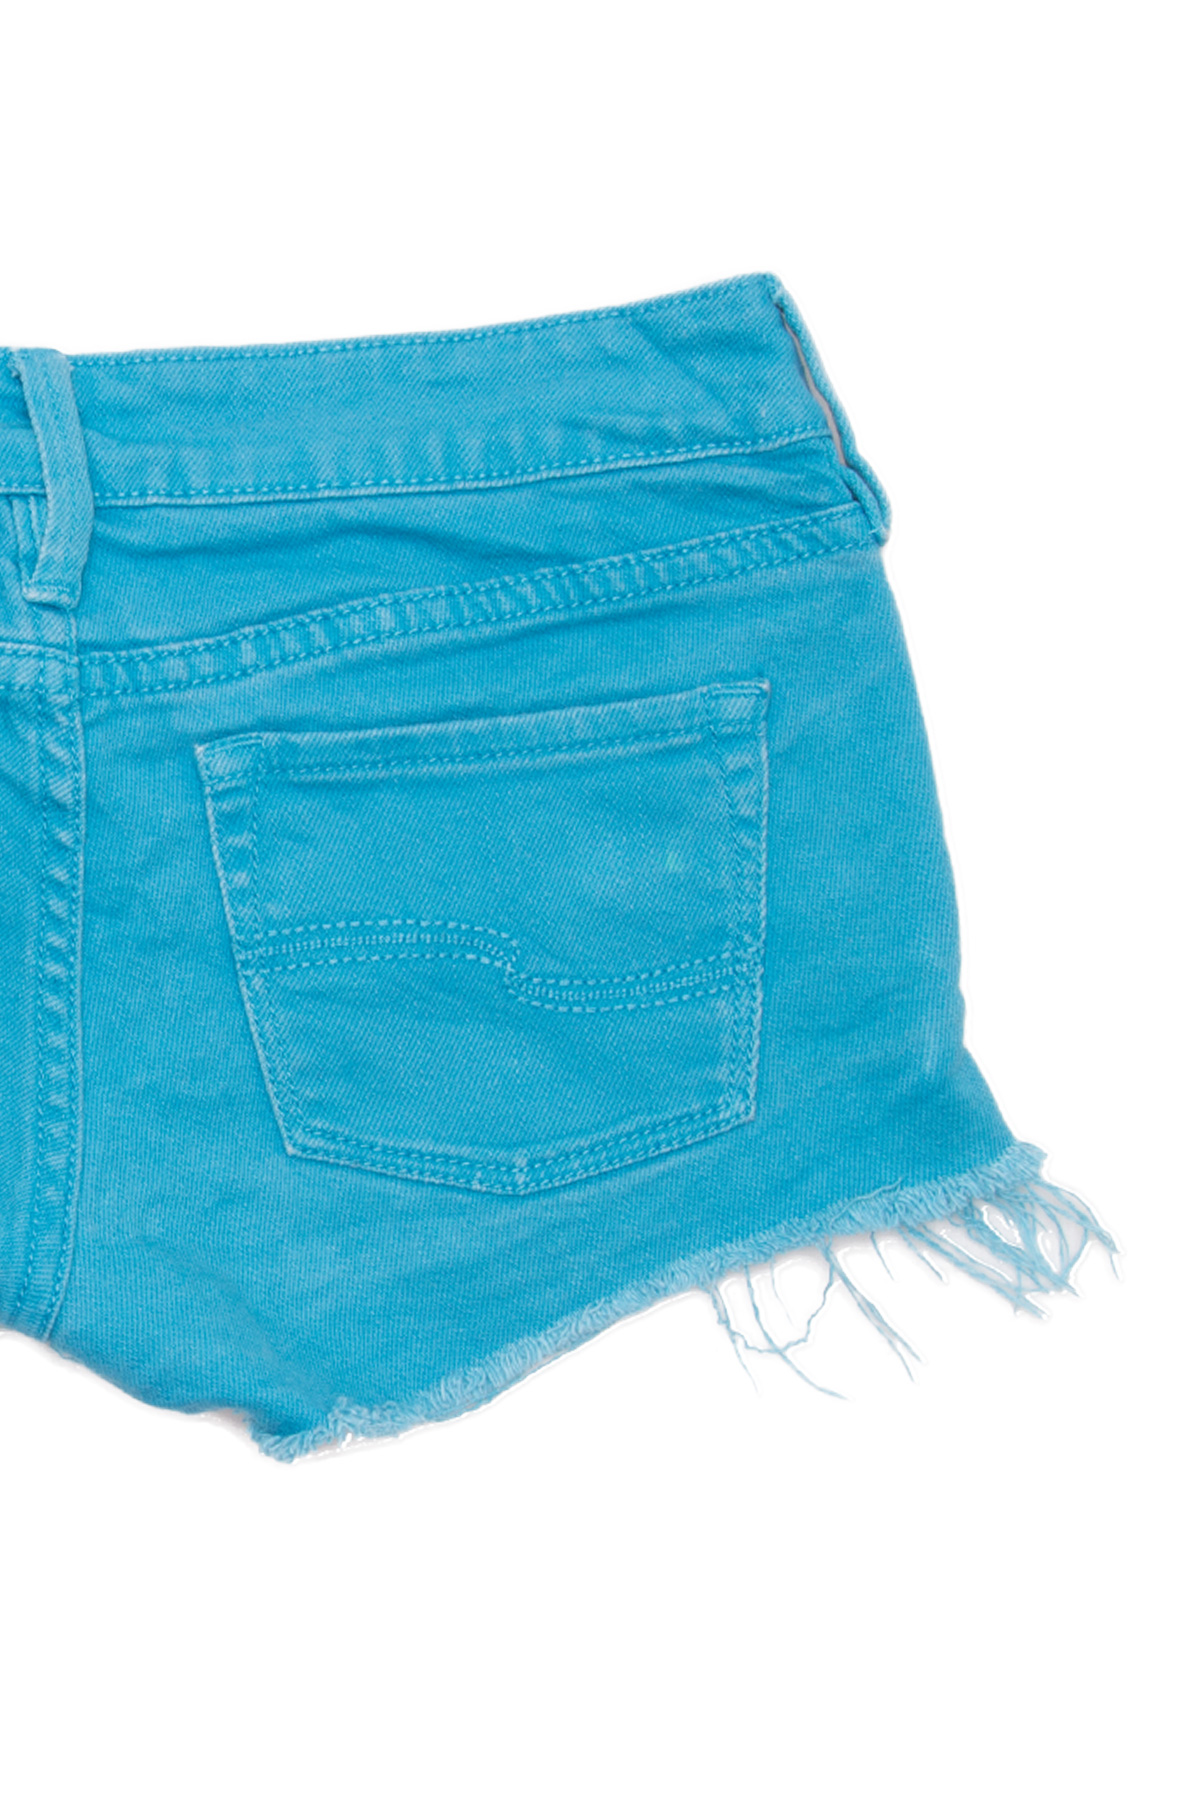 Cut Off Denim Shorts 54